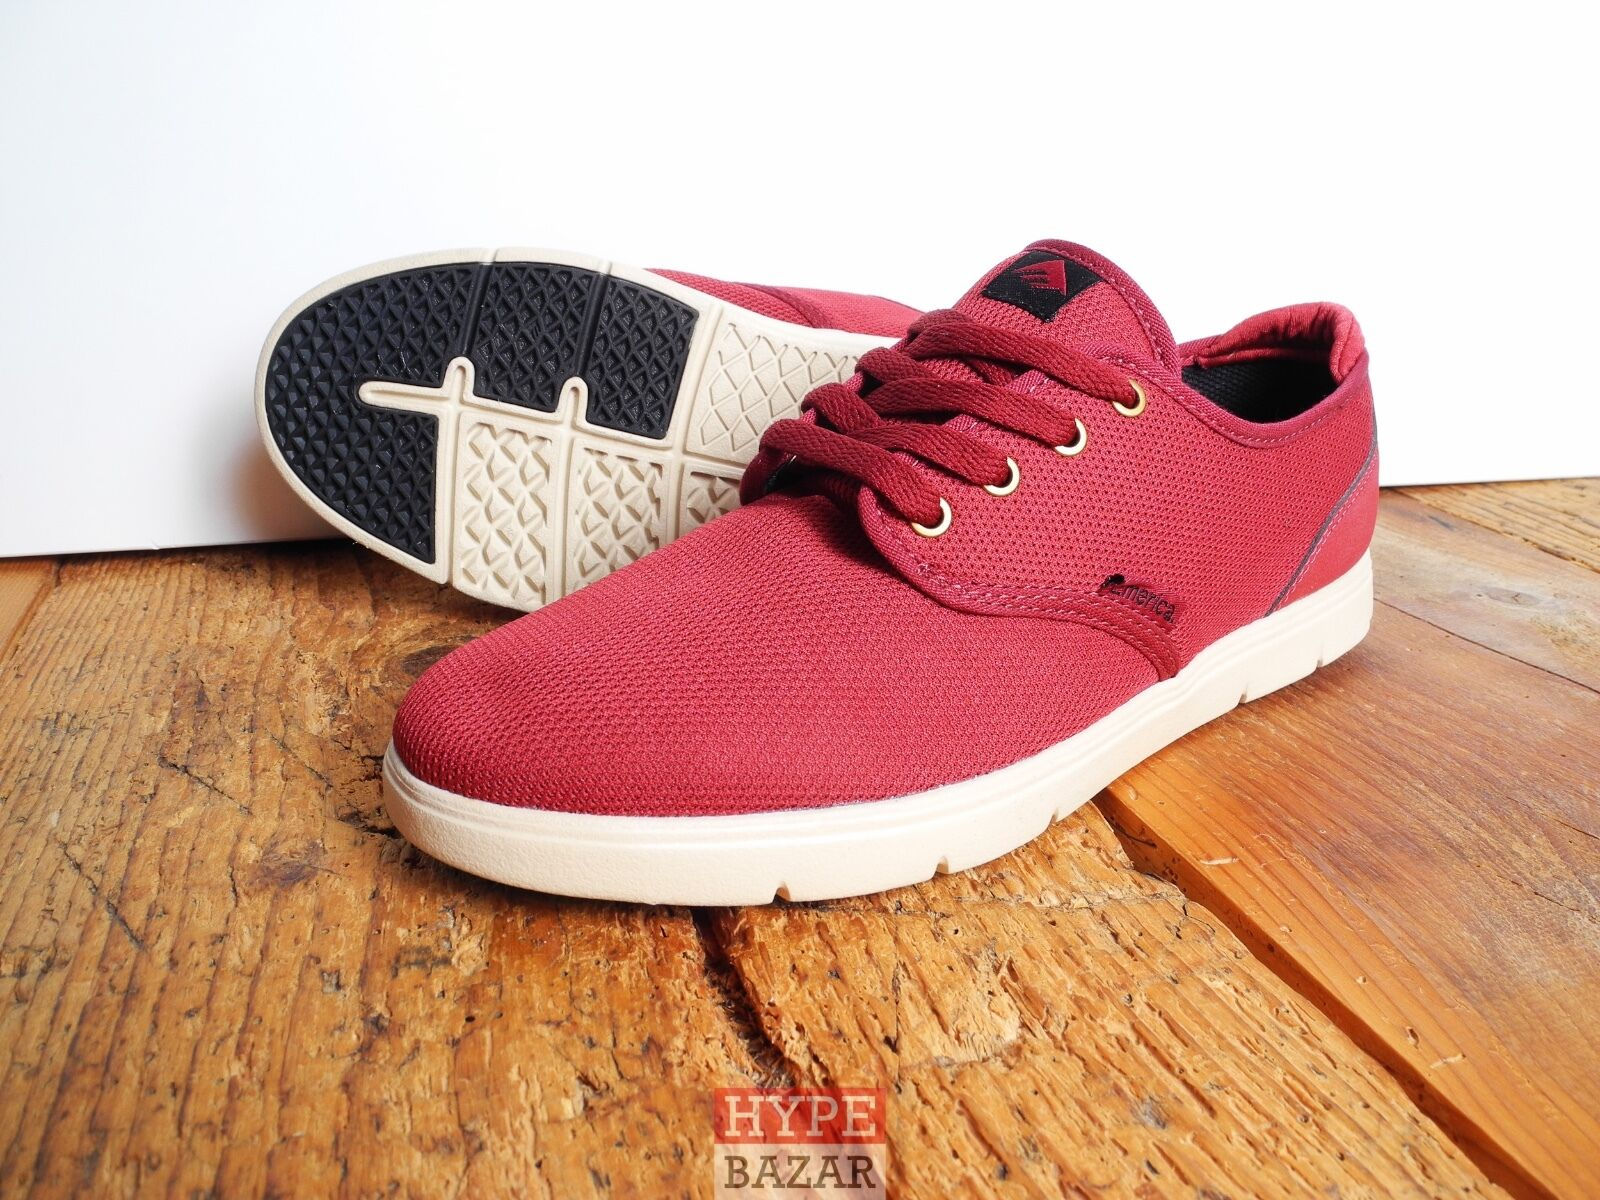 7f0409d4c43 EMERICA WINO CRUISER LT SHOE NEU GR US EMERICA SHOES BURGUNDY 9  nuwqbe2431-Athletic Shoes